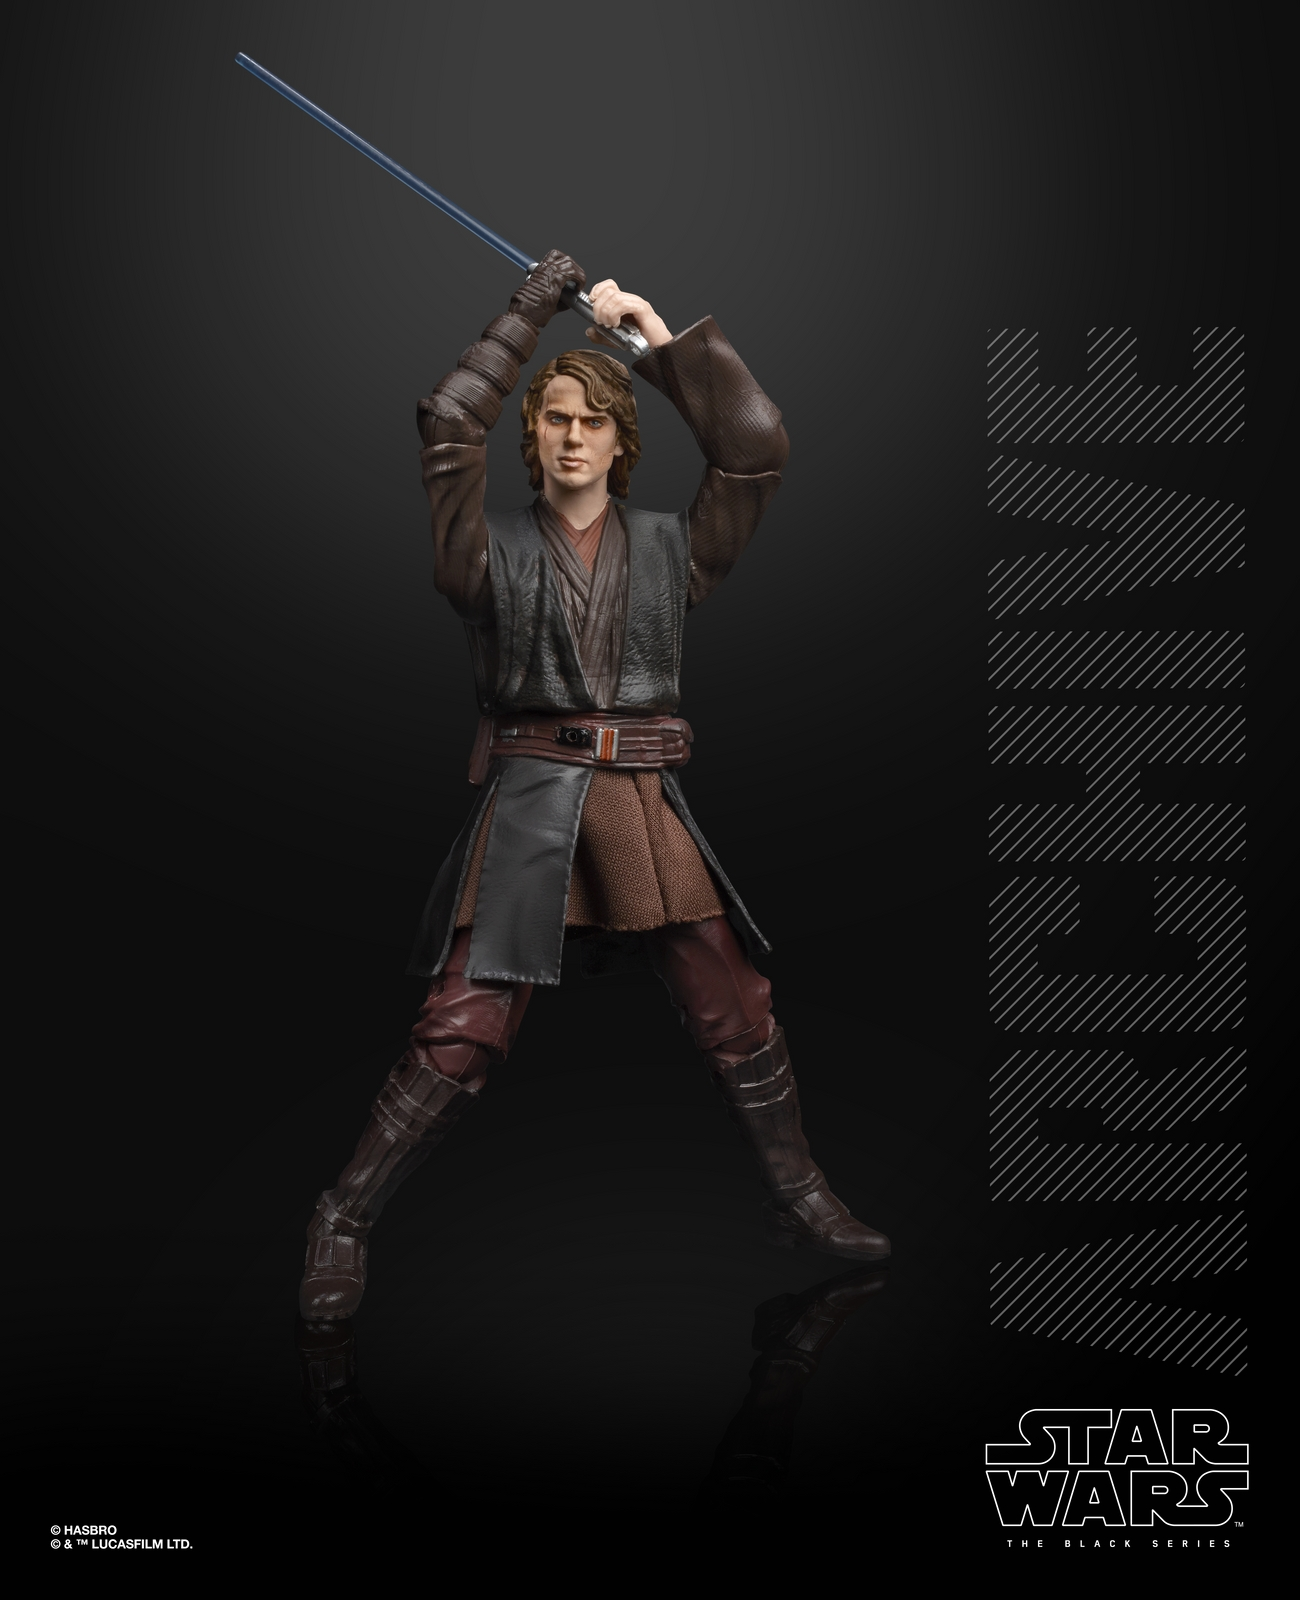 ROTS Anakin Skywalker Archive Black Series Figure 2